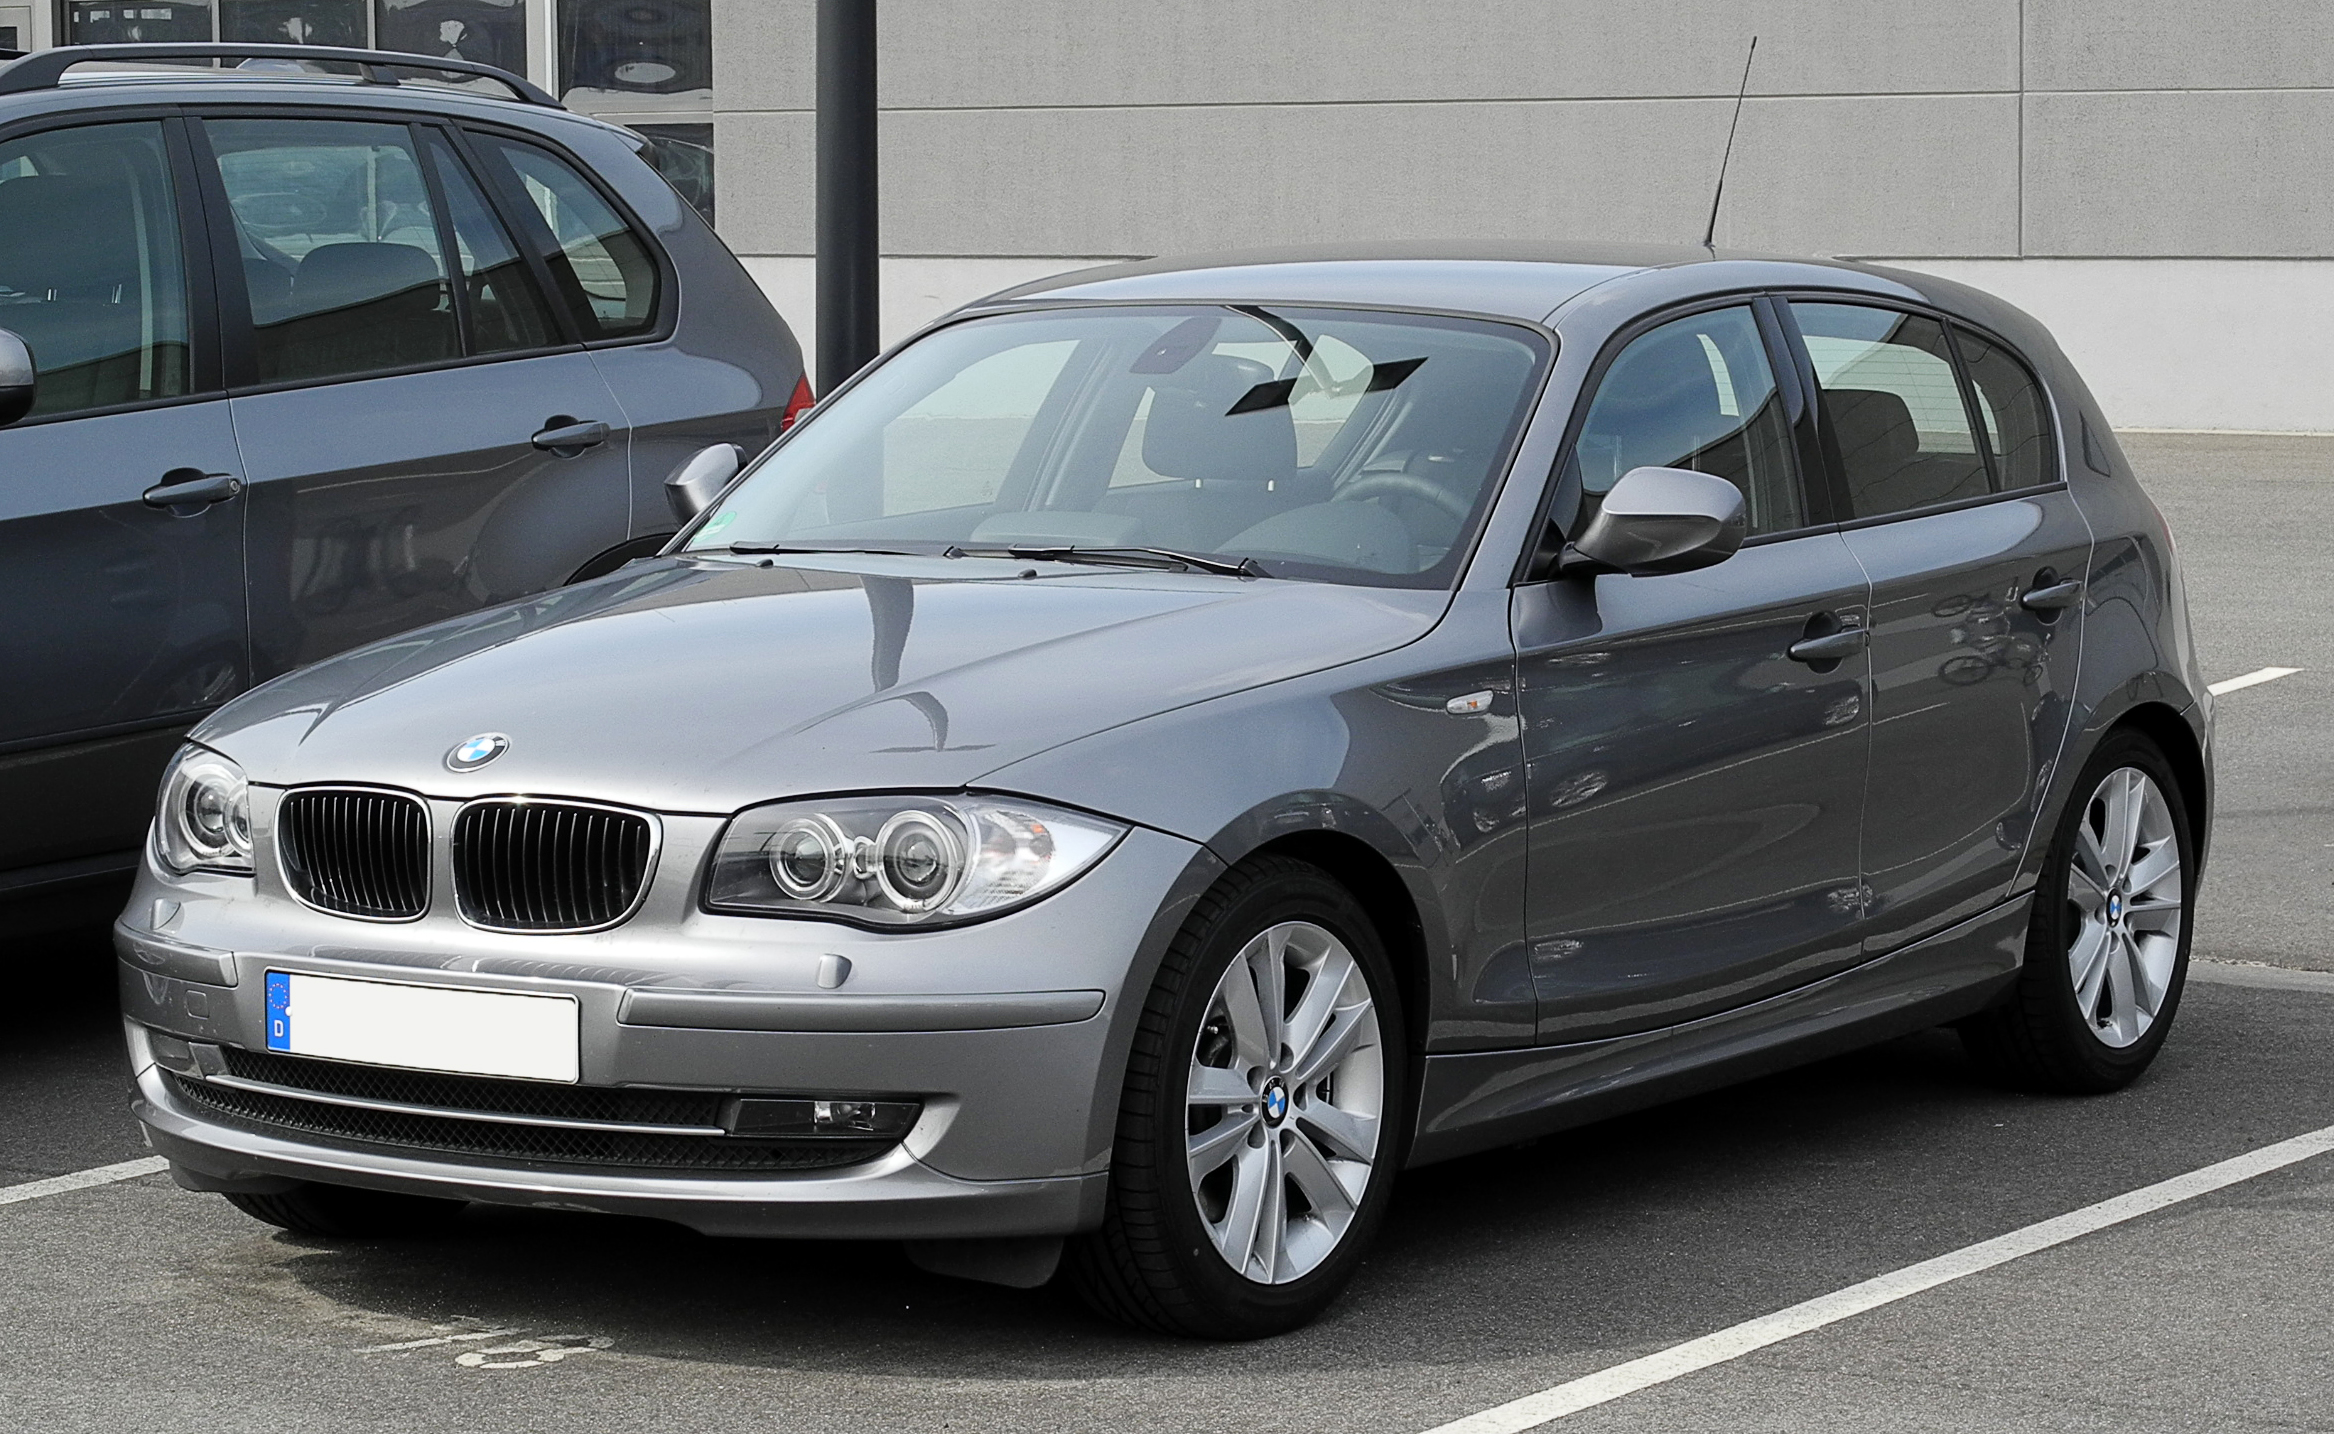 file bmw 123d e87 facelift frontansicht 12 juni 2011 d wikimedia commons. Black Bedroom Furniture Sets. Home Design Ideas